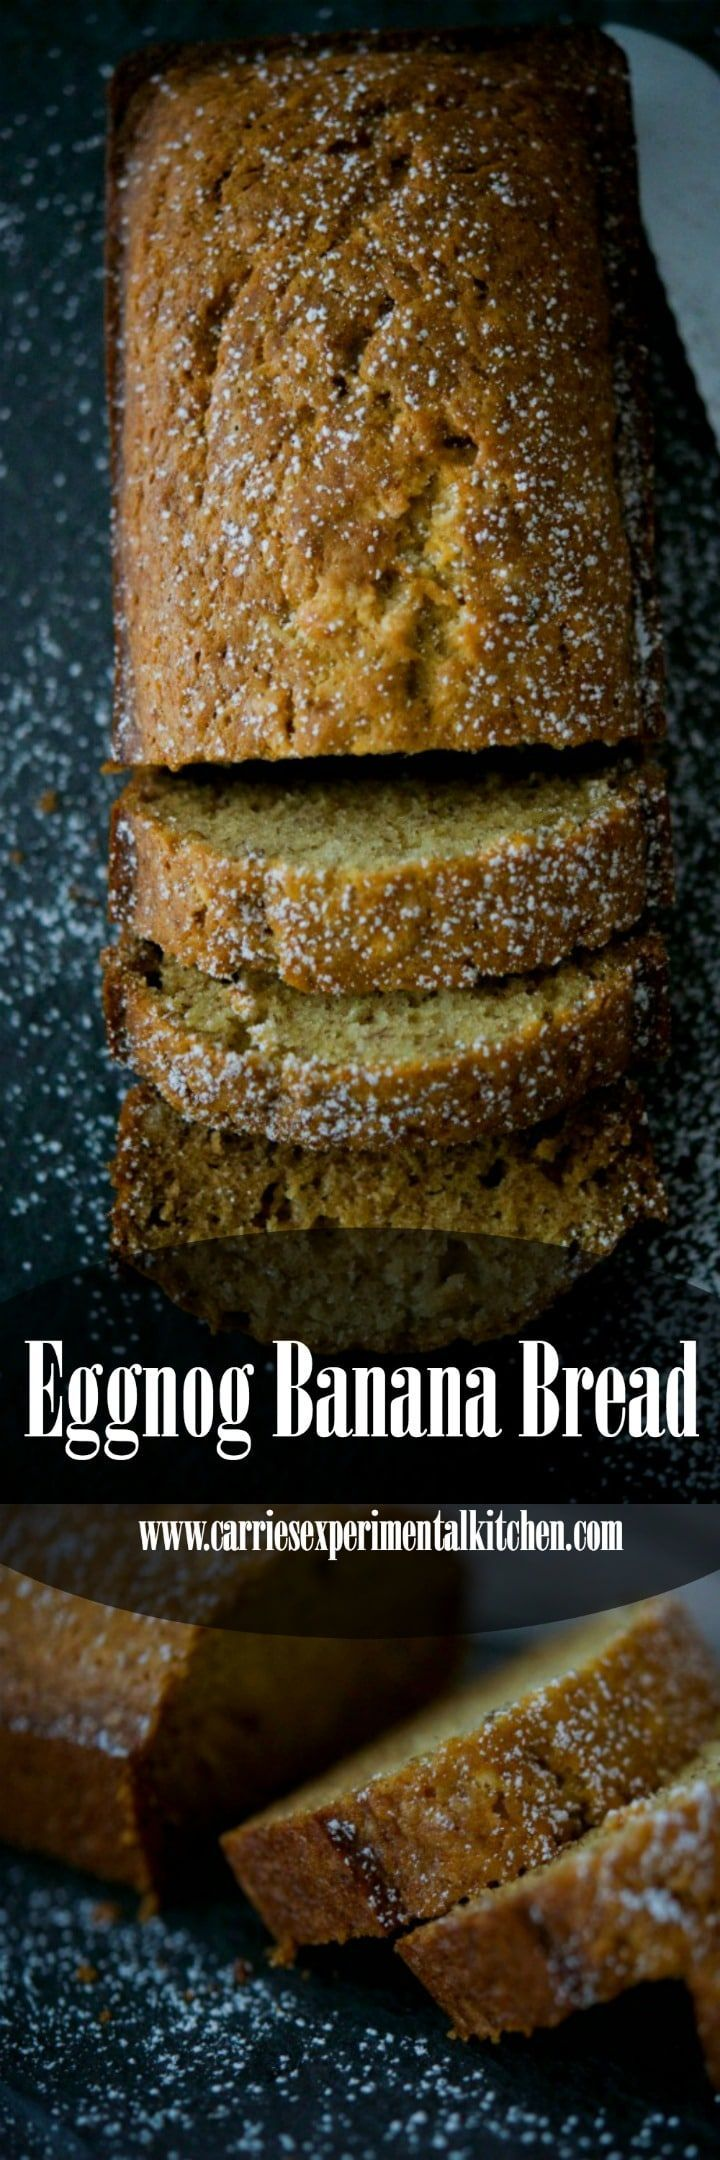 Combine the flavors of the season with this Eggnog Banana Bread made with bananas, eggnog and nutmeg. Make into mini loaves for gift giving too!